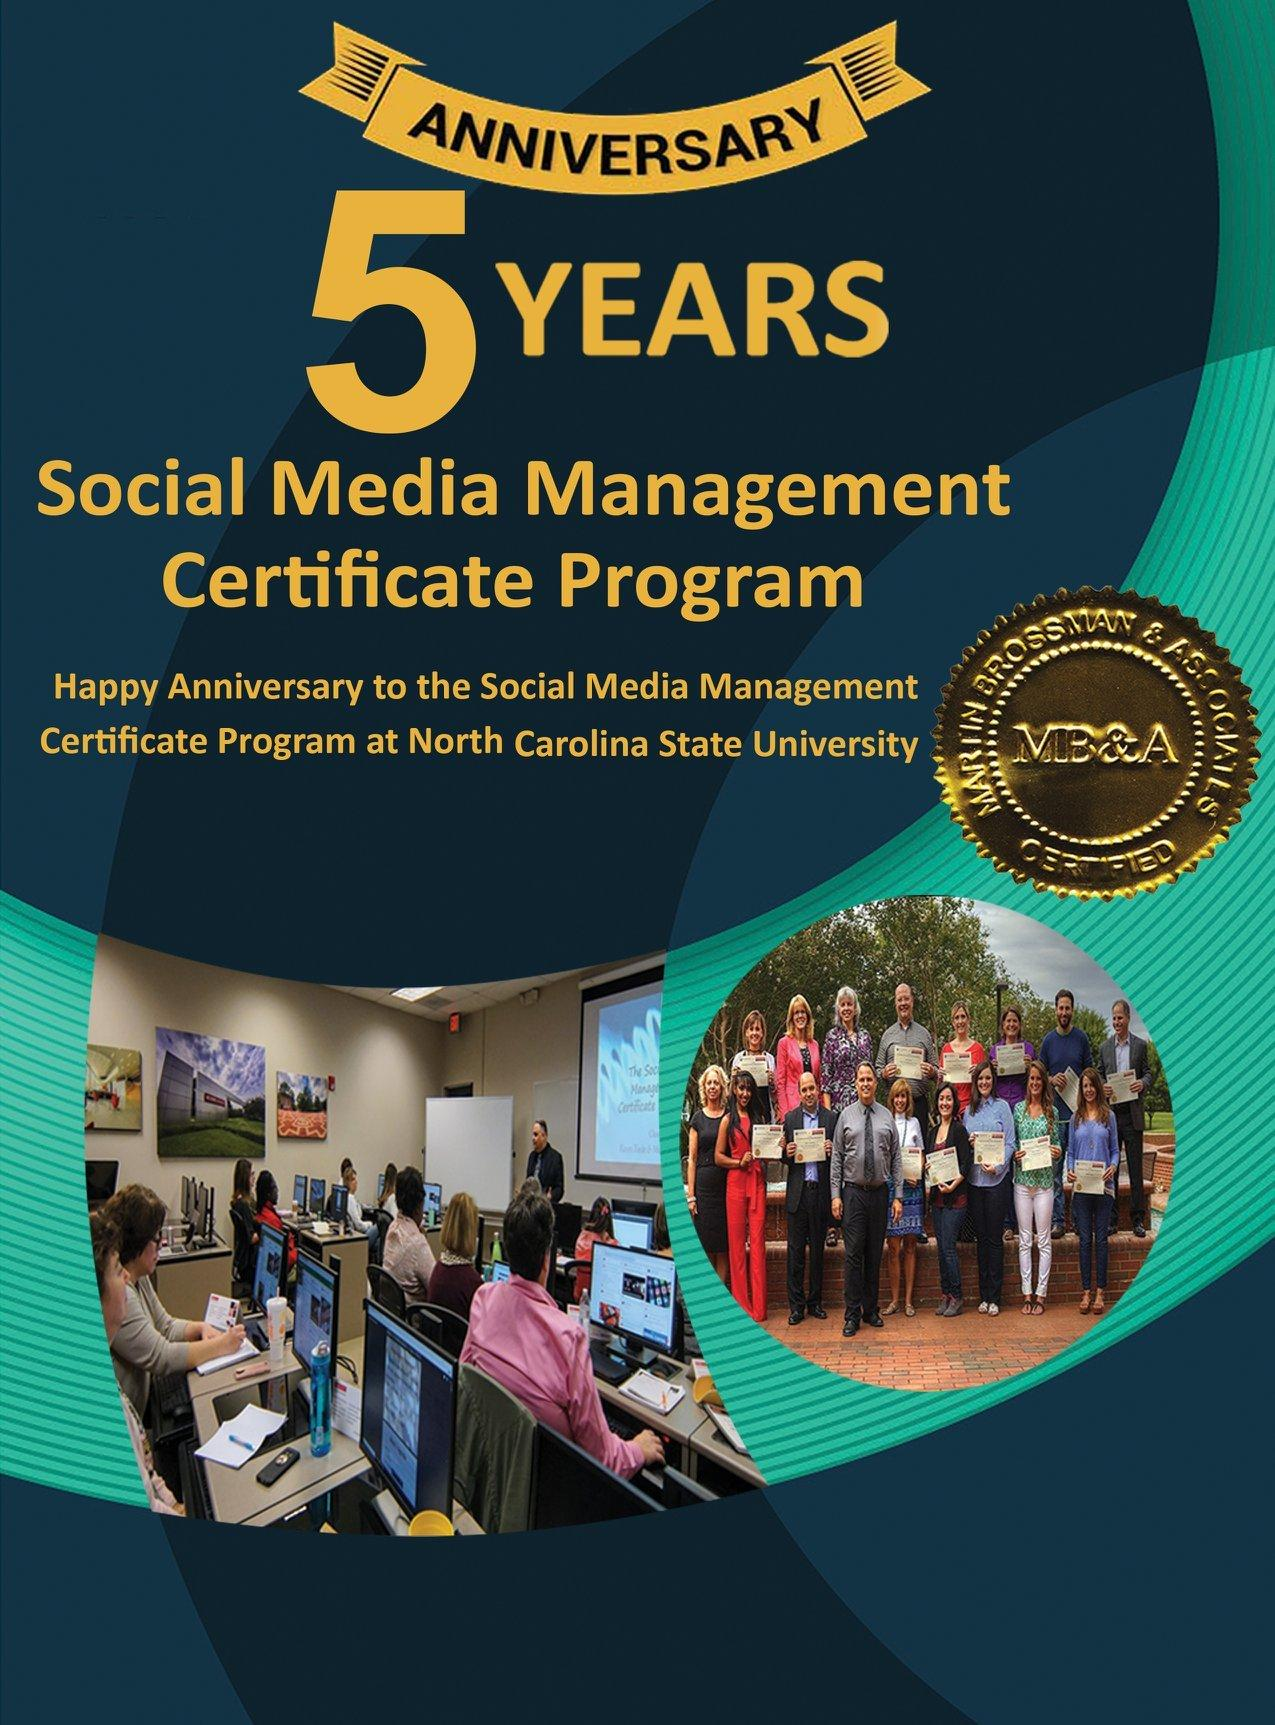 Celebrating 5 years of the Social Media Management Certificate program in RTP